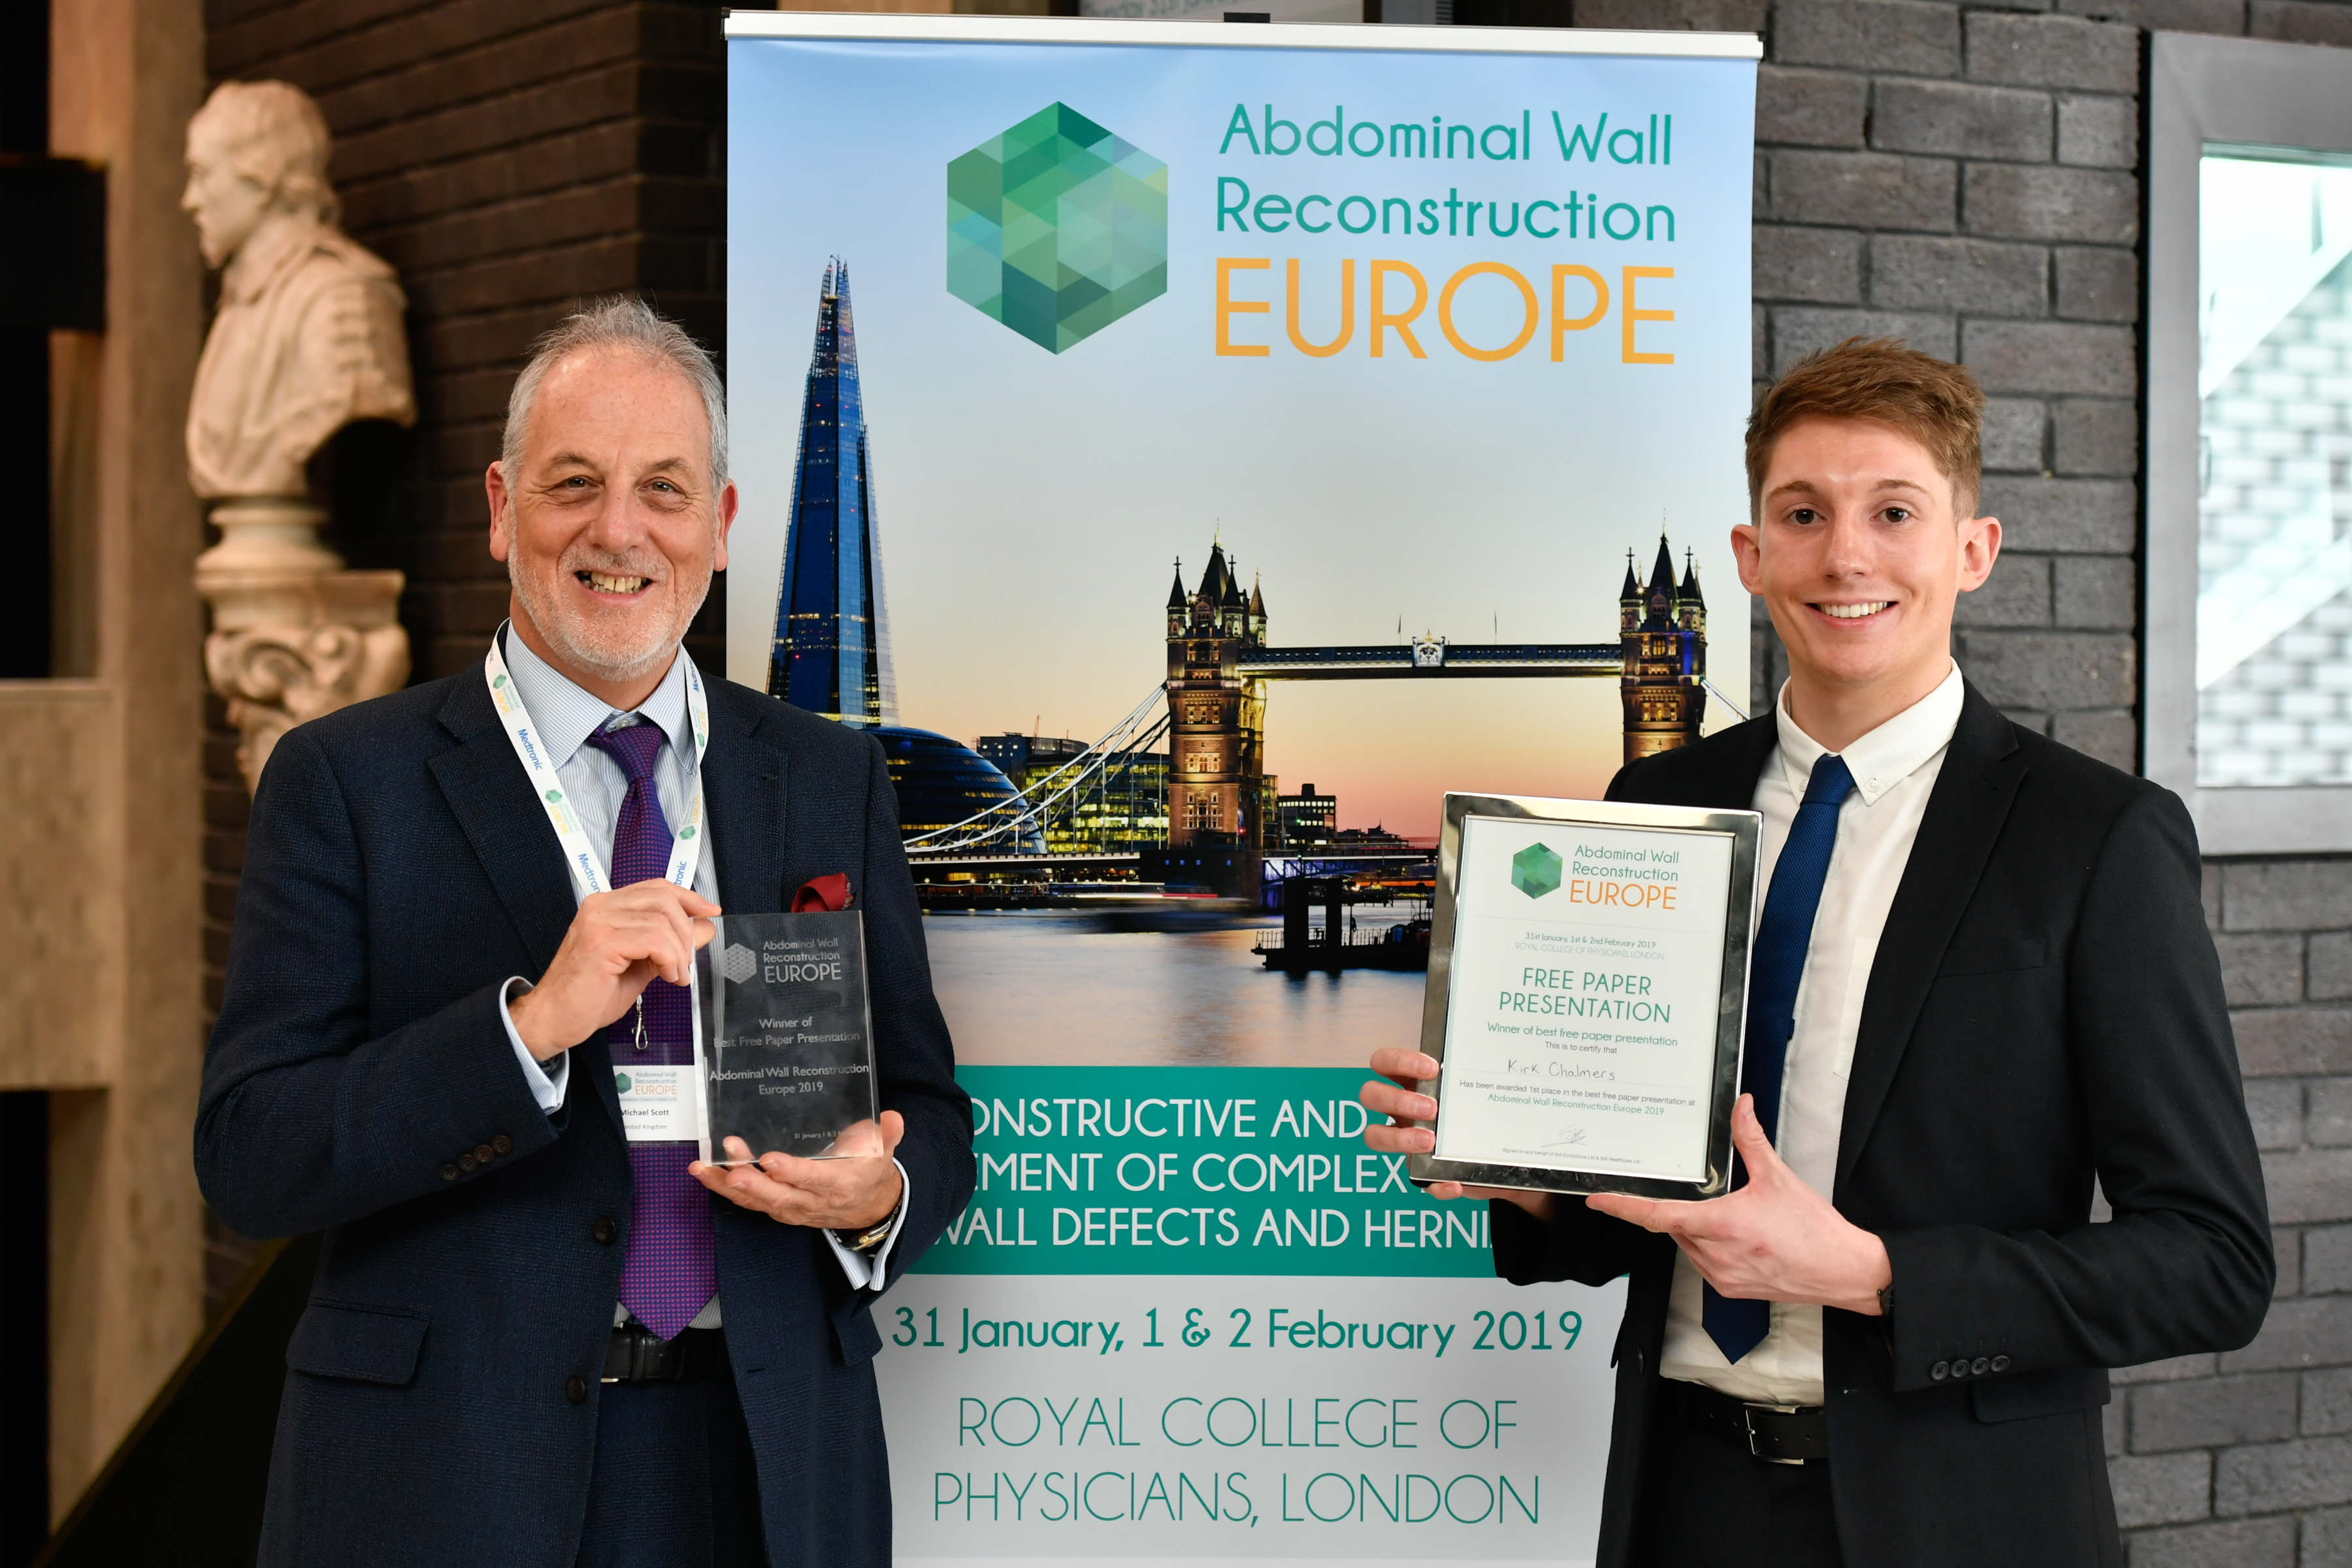 AWR Europe | Abdominal Wall Reconstruction Europe 2020